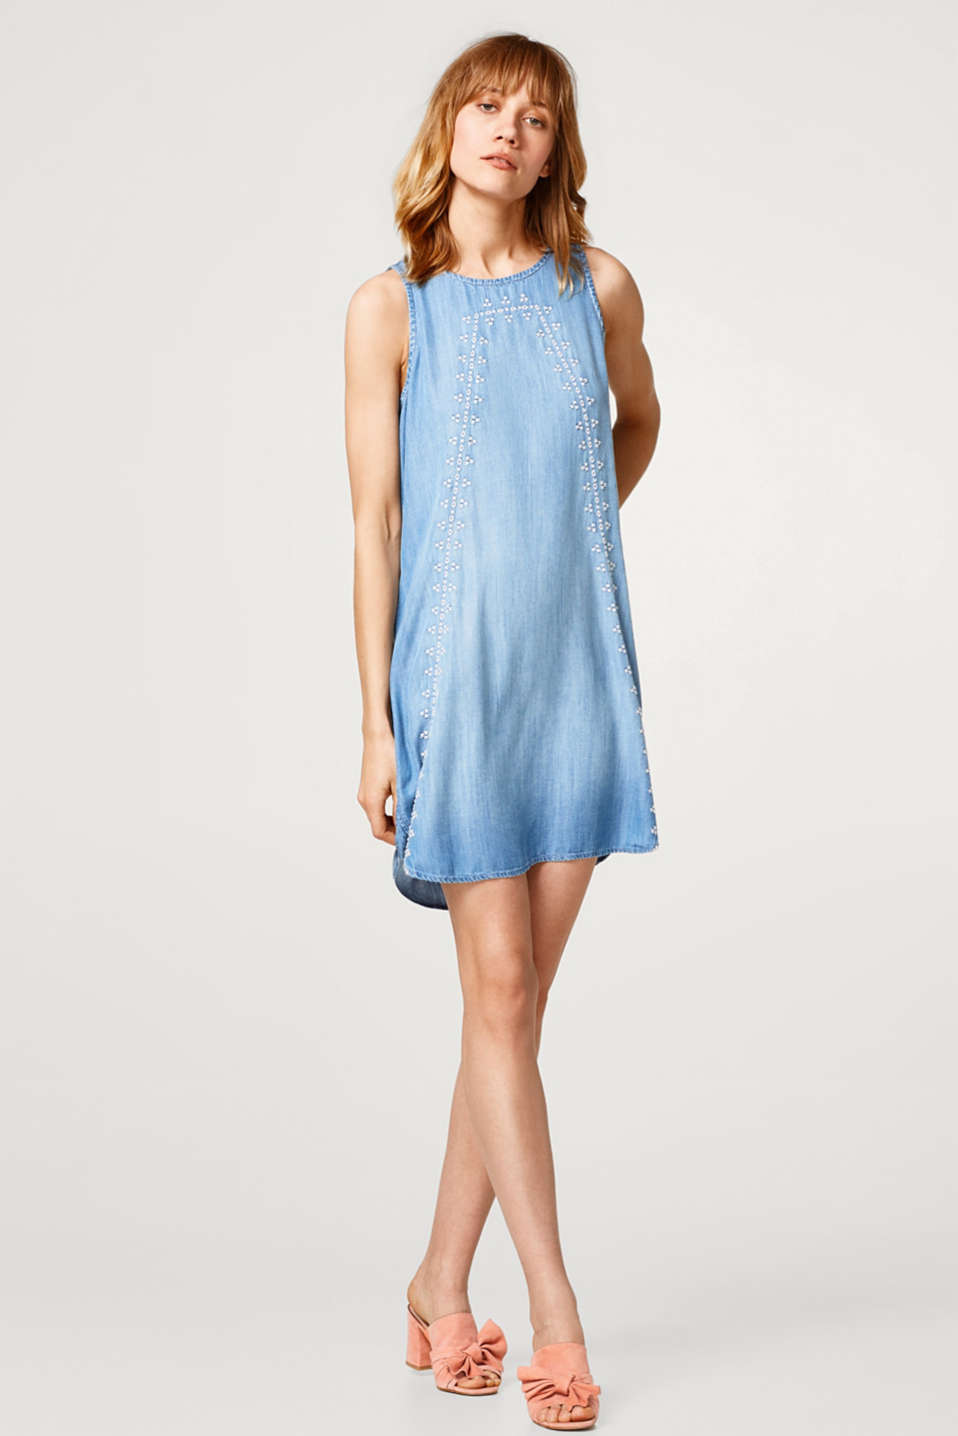 Embroidered lyocell dress in a denim look